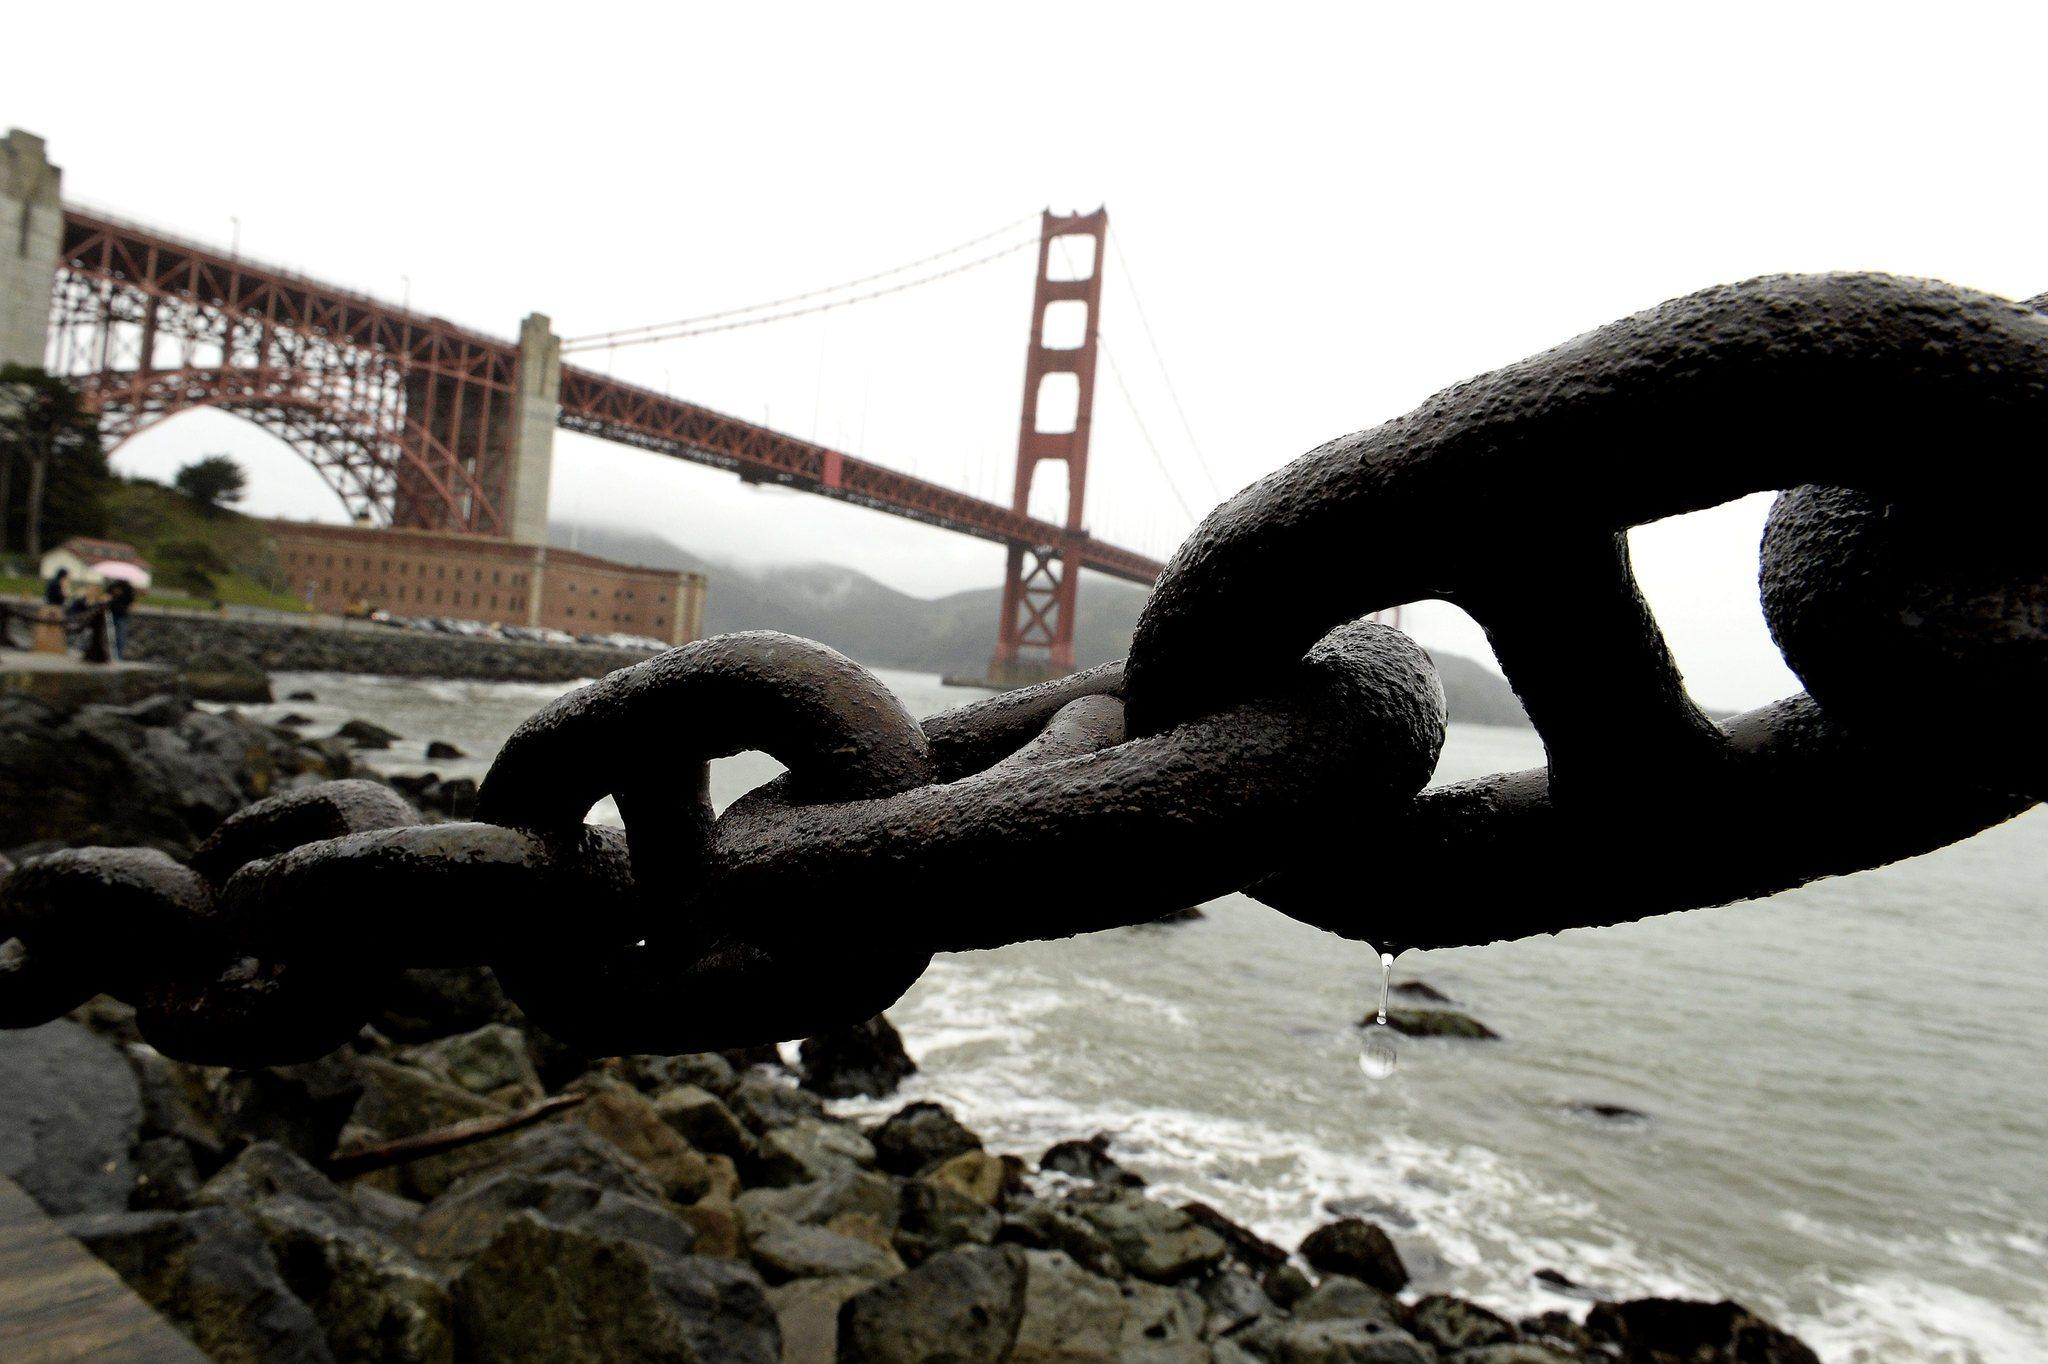 Water drips from a chained barrier along the San Francisco Bay during a storm on Monday that produced multiple lightning strikes.